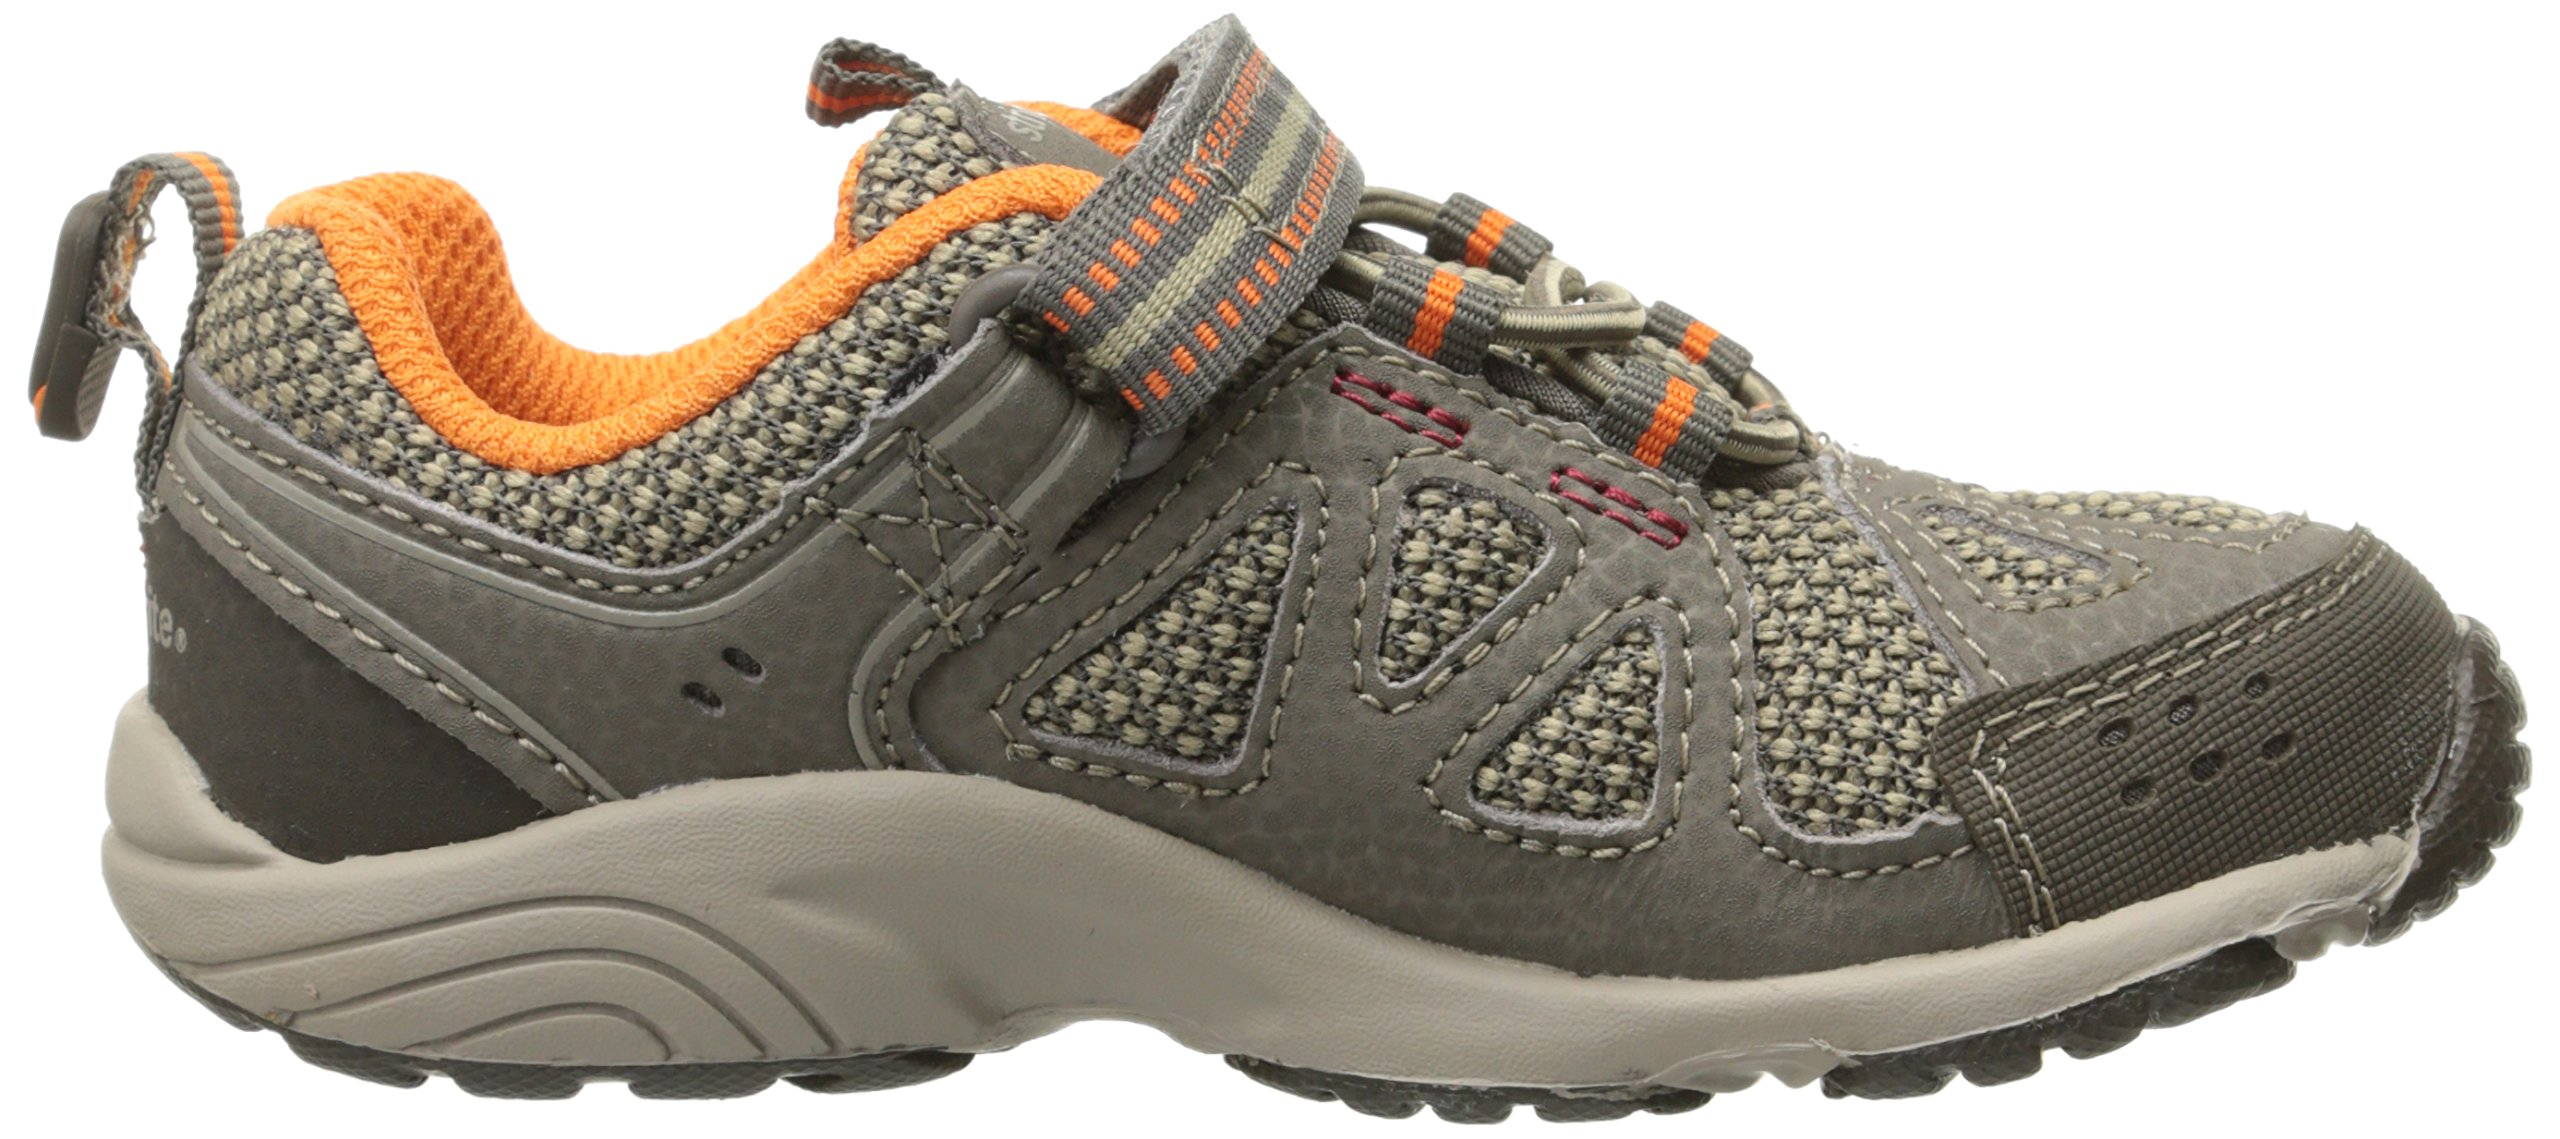 Stride Rite Made 2 Play Baby Ian Sneaker (Toddler),Taupe,4.5 XW US Toddler by Stride Rite (Image #7)